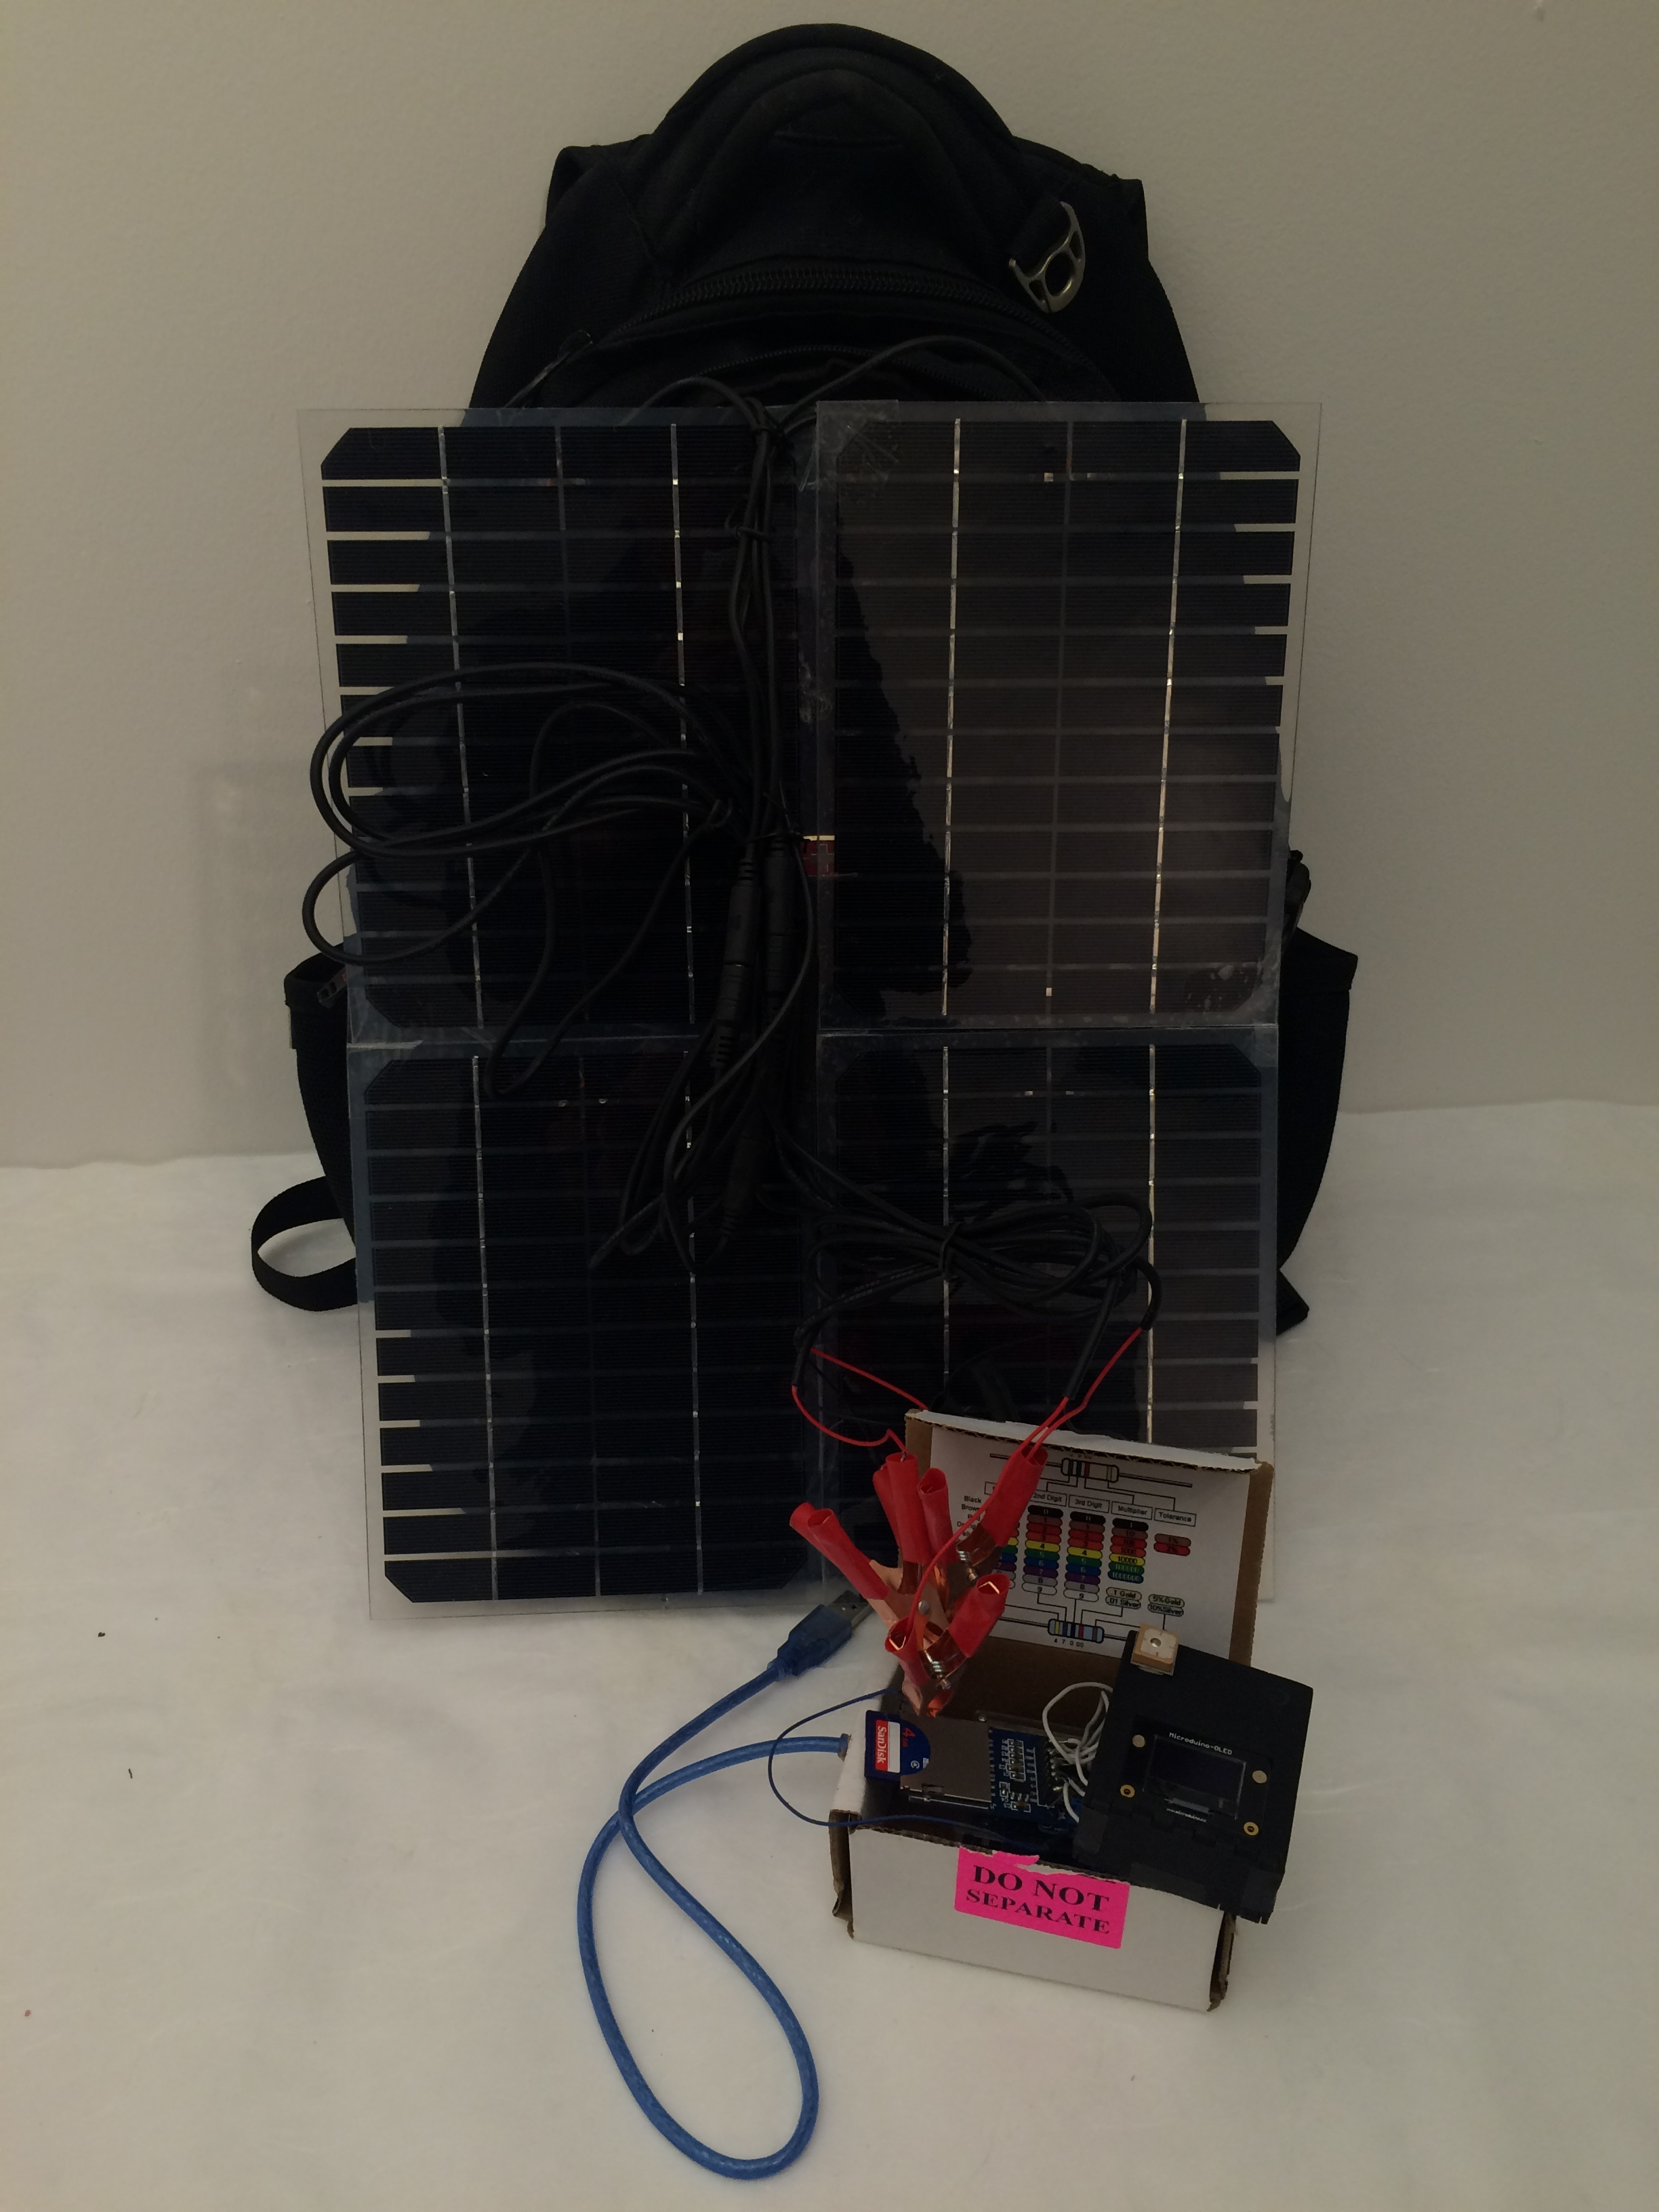 A device made to collect rhythm of the street lamp. Carring the bag and walk on the street, the solar panels will react to the light source and generate the waves.